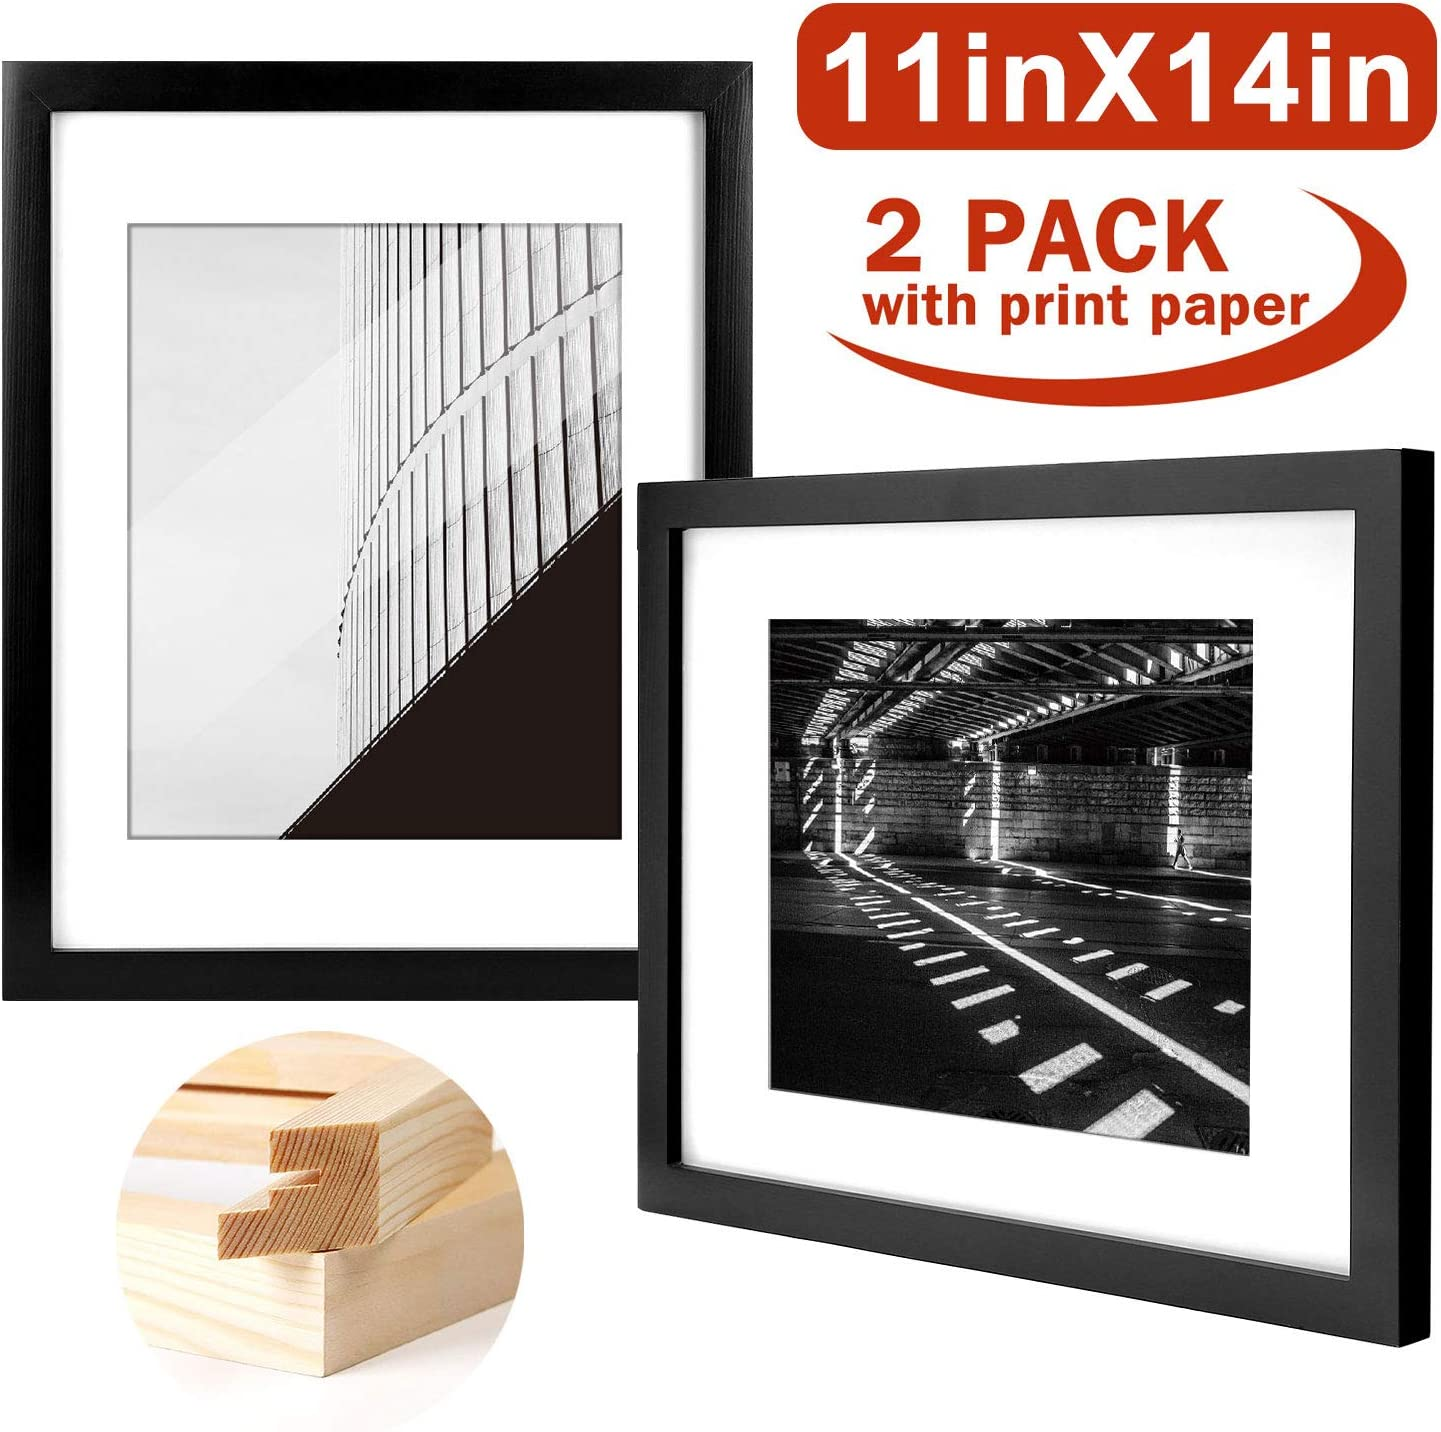 Yome 11x14 Black Picture Frames, Collage Photo Frames Set Made of Solid Wood and Plexiglass for Wall Display Pictures 8x10 with Mat, Mounting Hardware Included, 2 pack